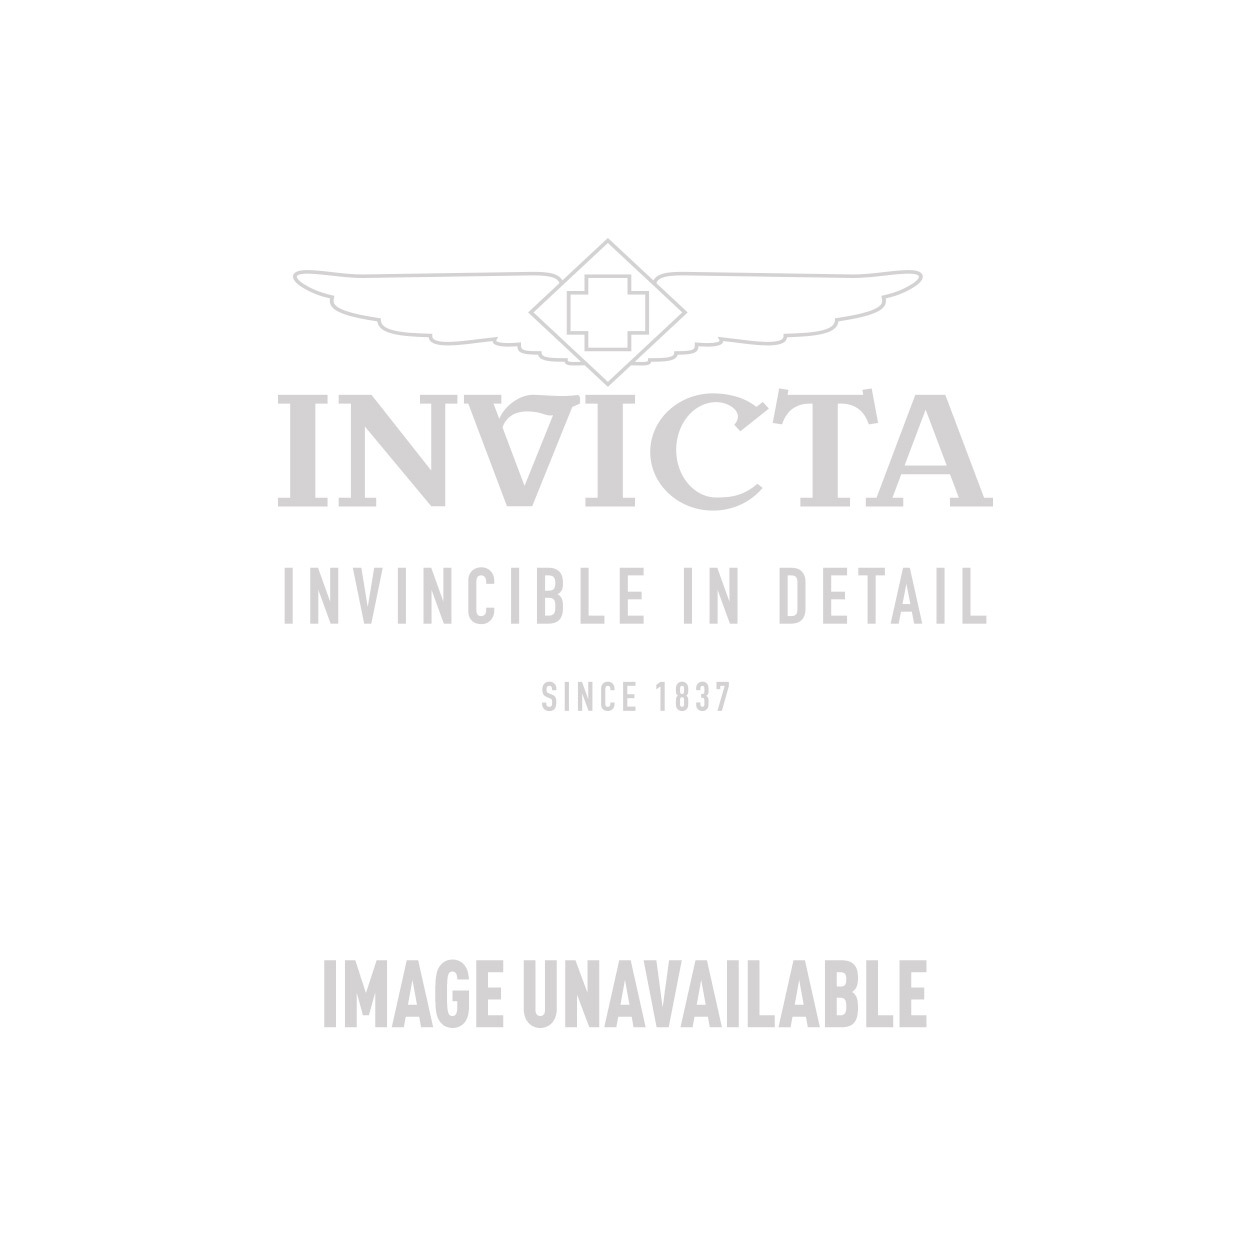 Invicta Specialty Swiss Movement Quartz Watch - Gold case with Gold tone Stainless Steel band - Model 13619